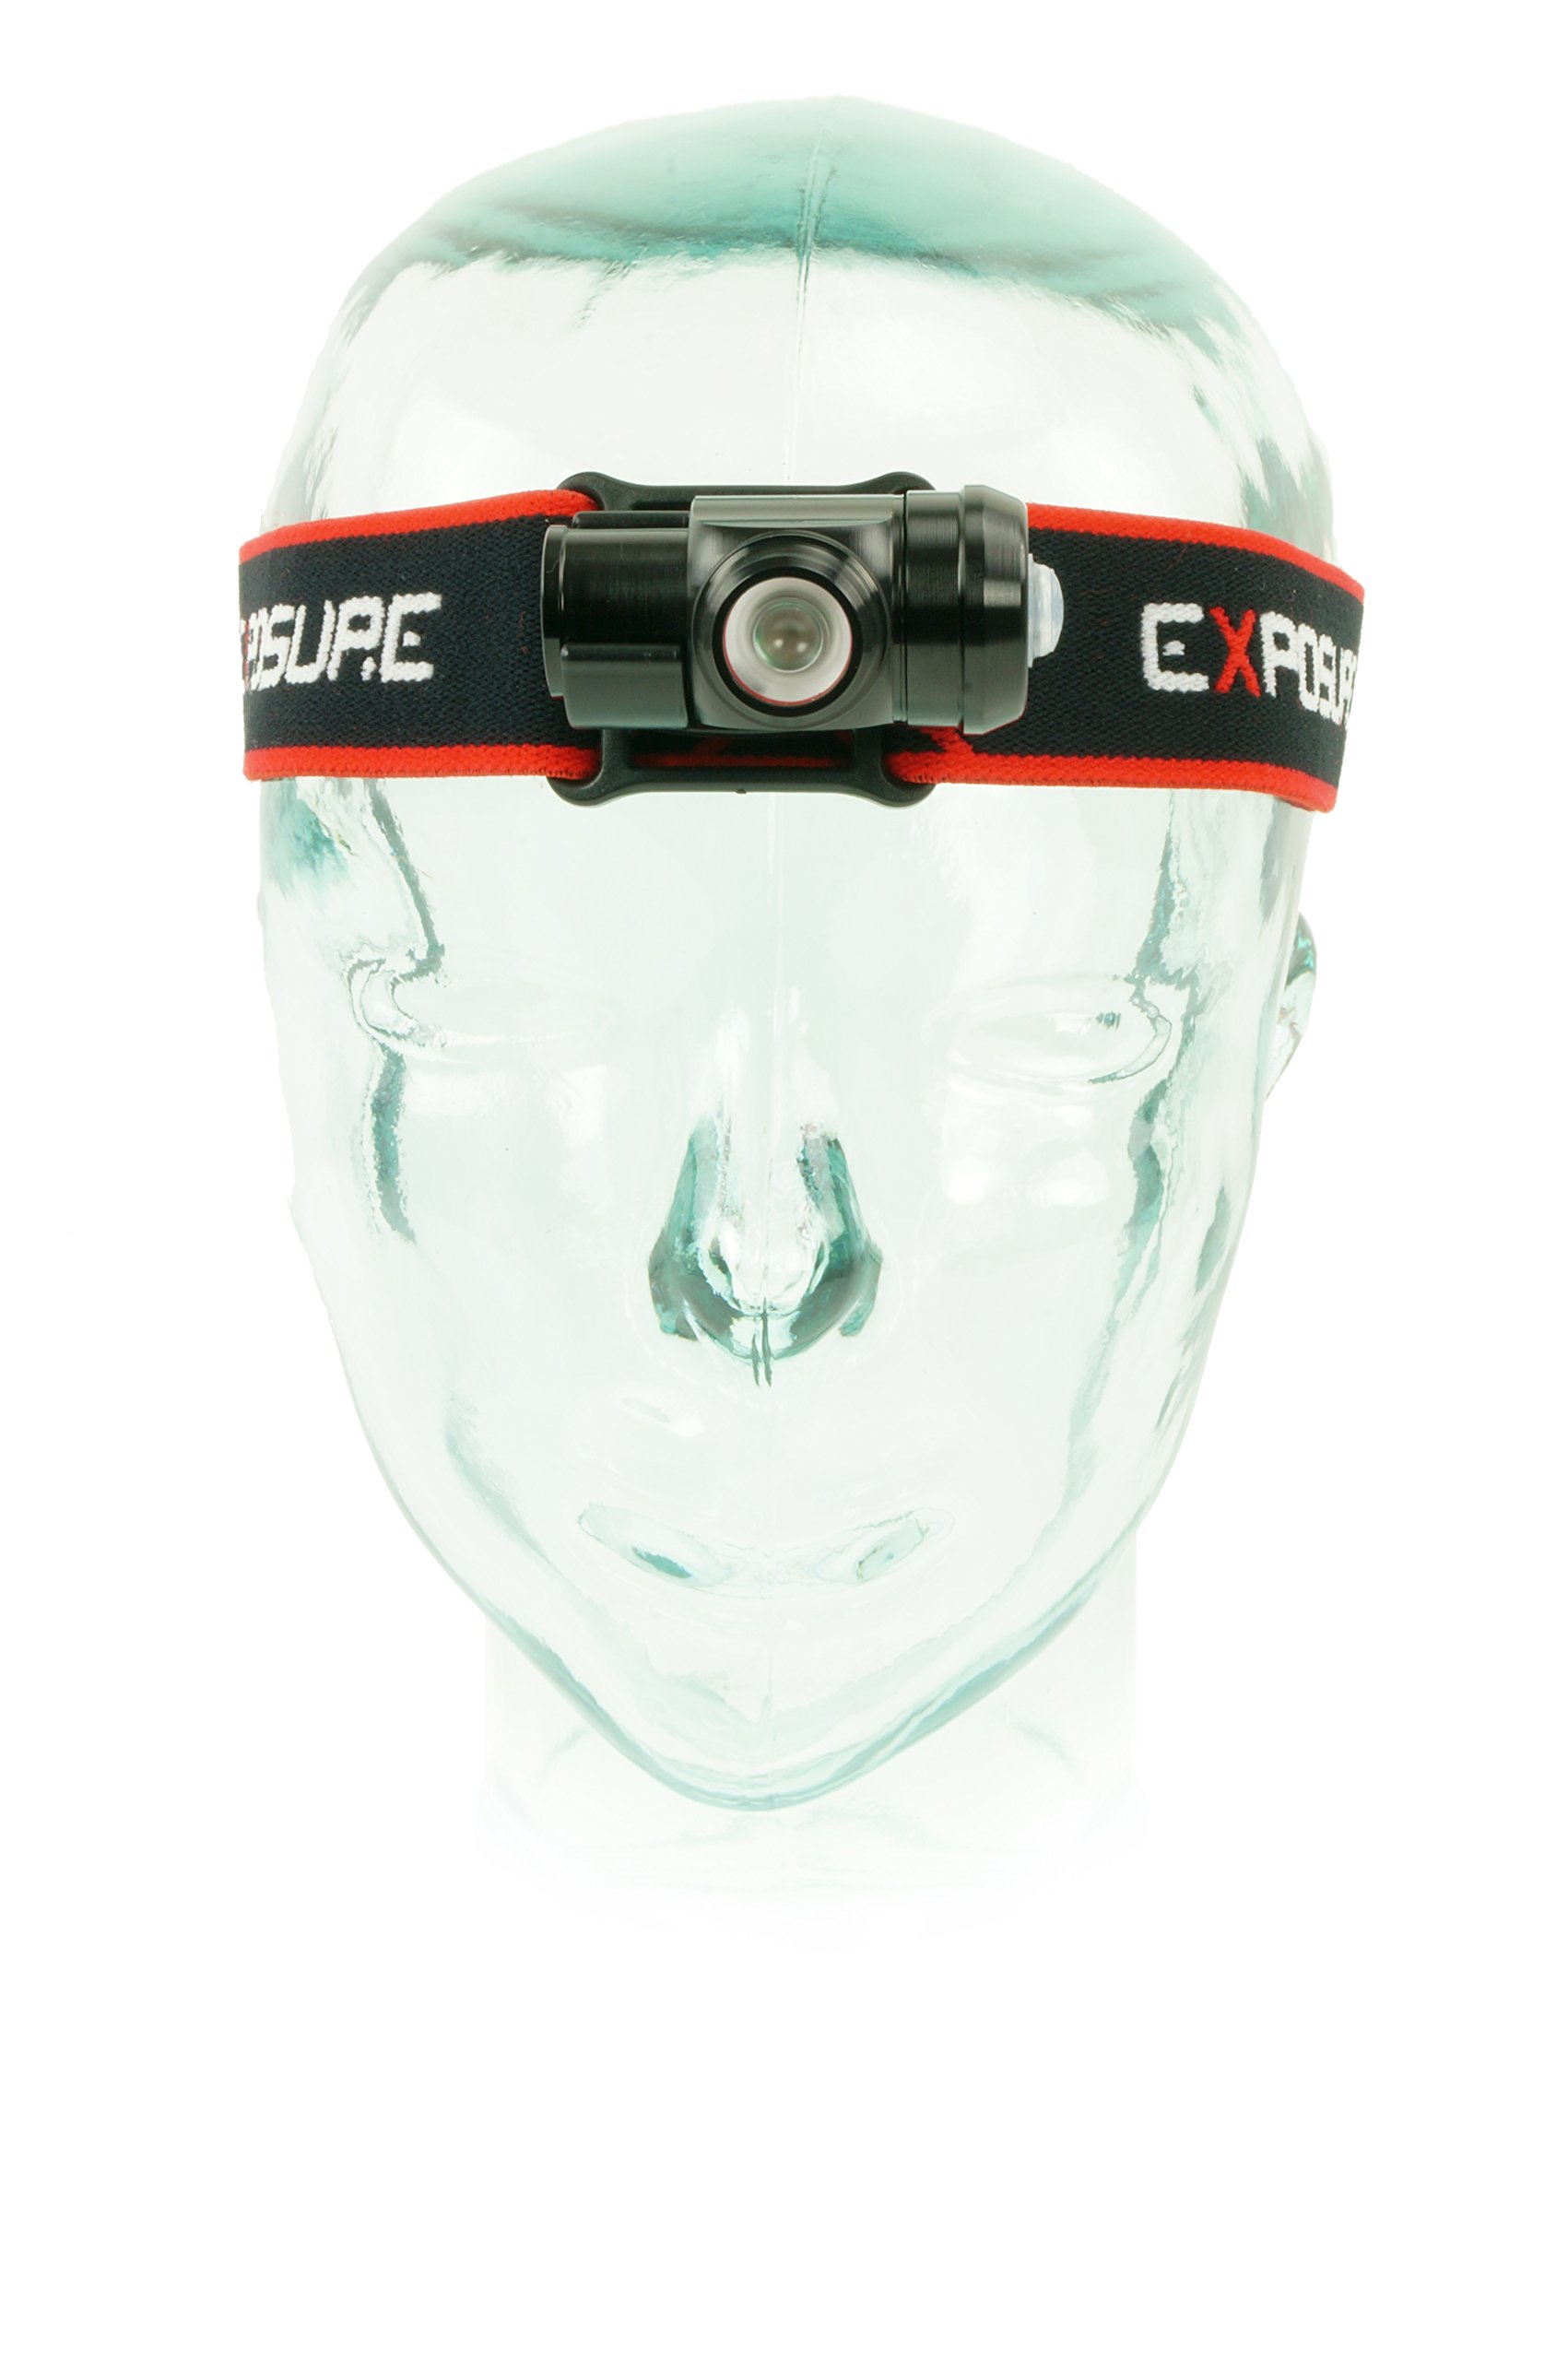 Exposure Lights R.A.W. PRO Edition 200 Lumen Red & White waterproof head Torch Made In Great Britain